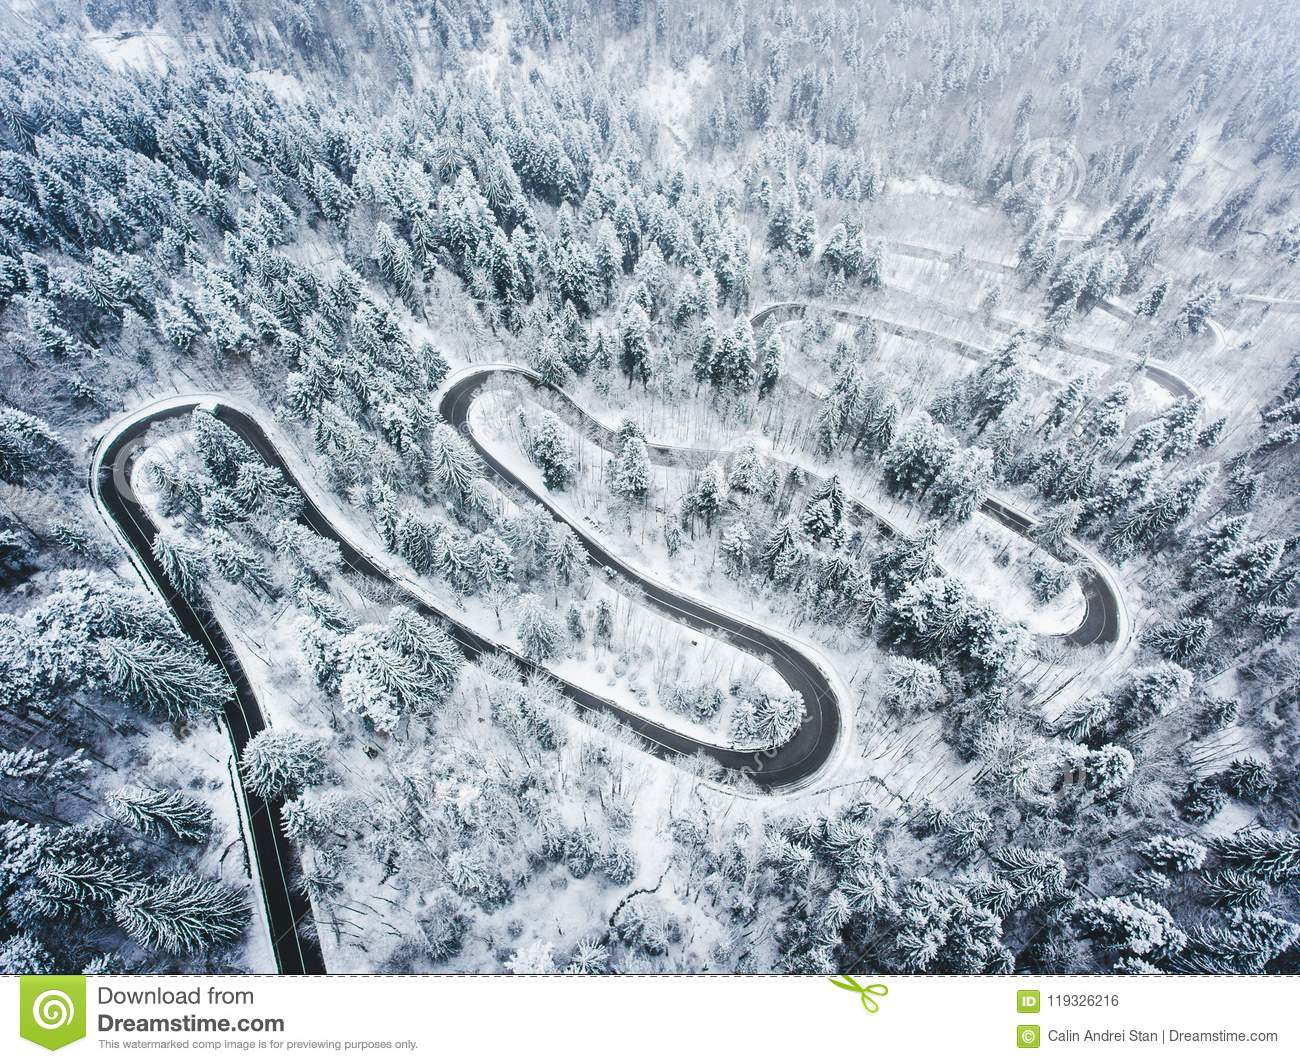 Extreme Winter Weather On A Winding Road In The Mountains